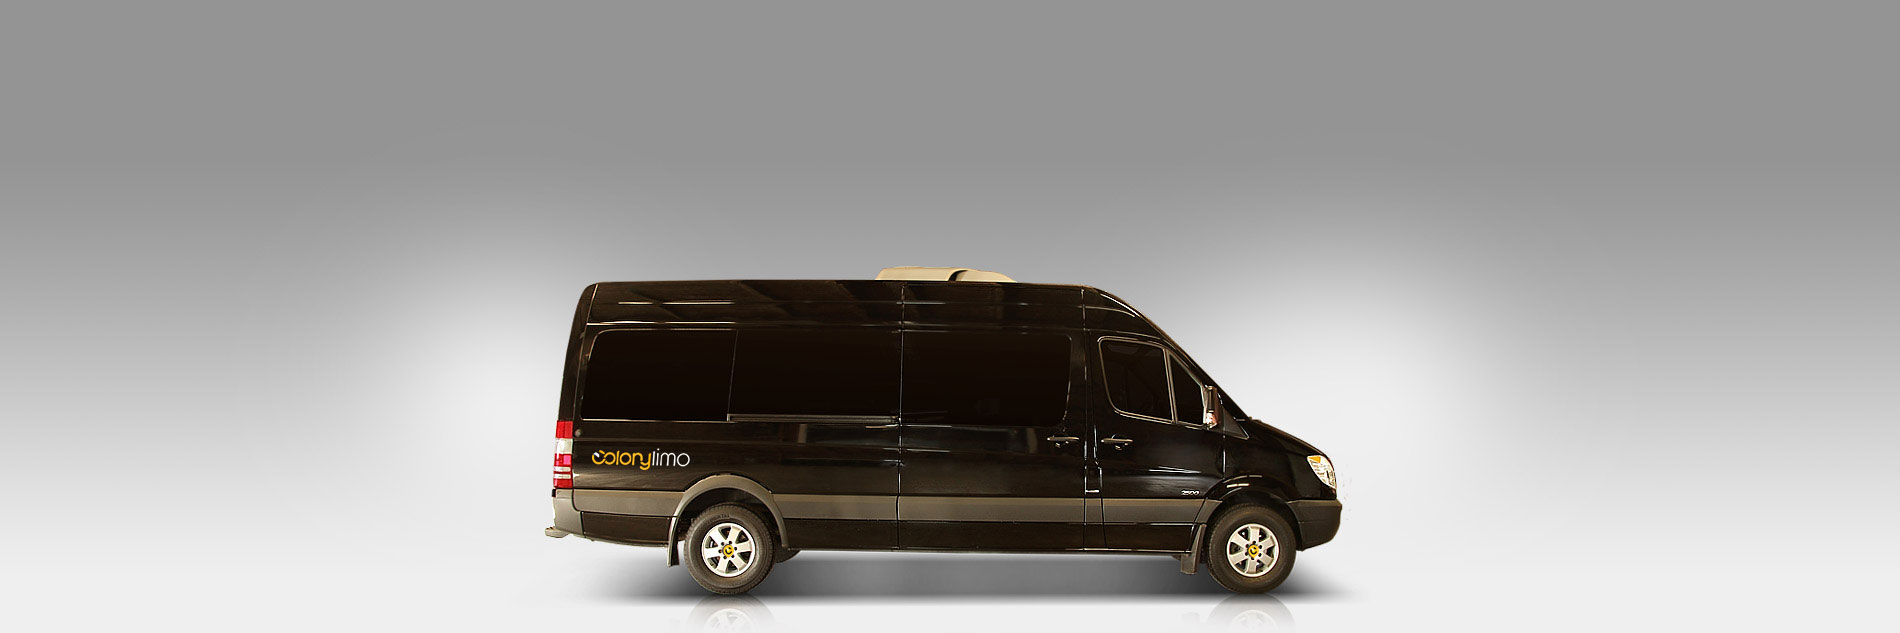 Mercedes sprinter rental autos post for Mercedes benz sprinter luxury van price